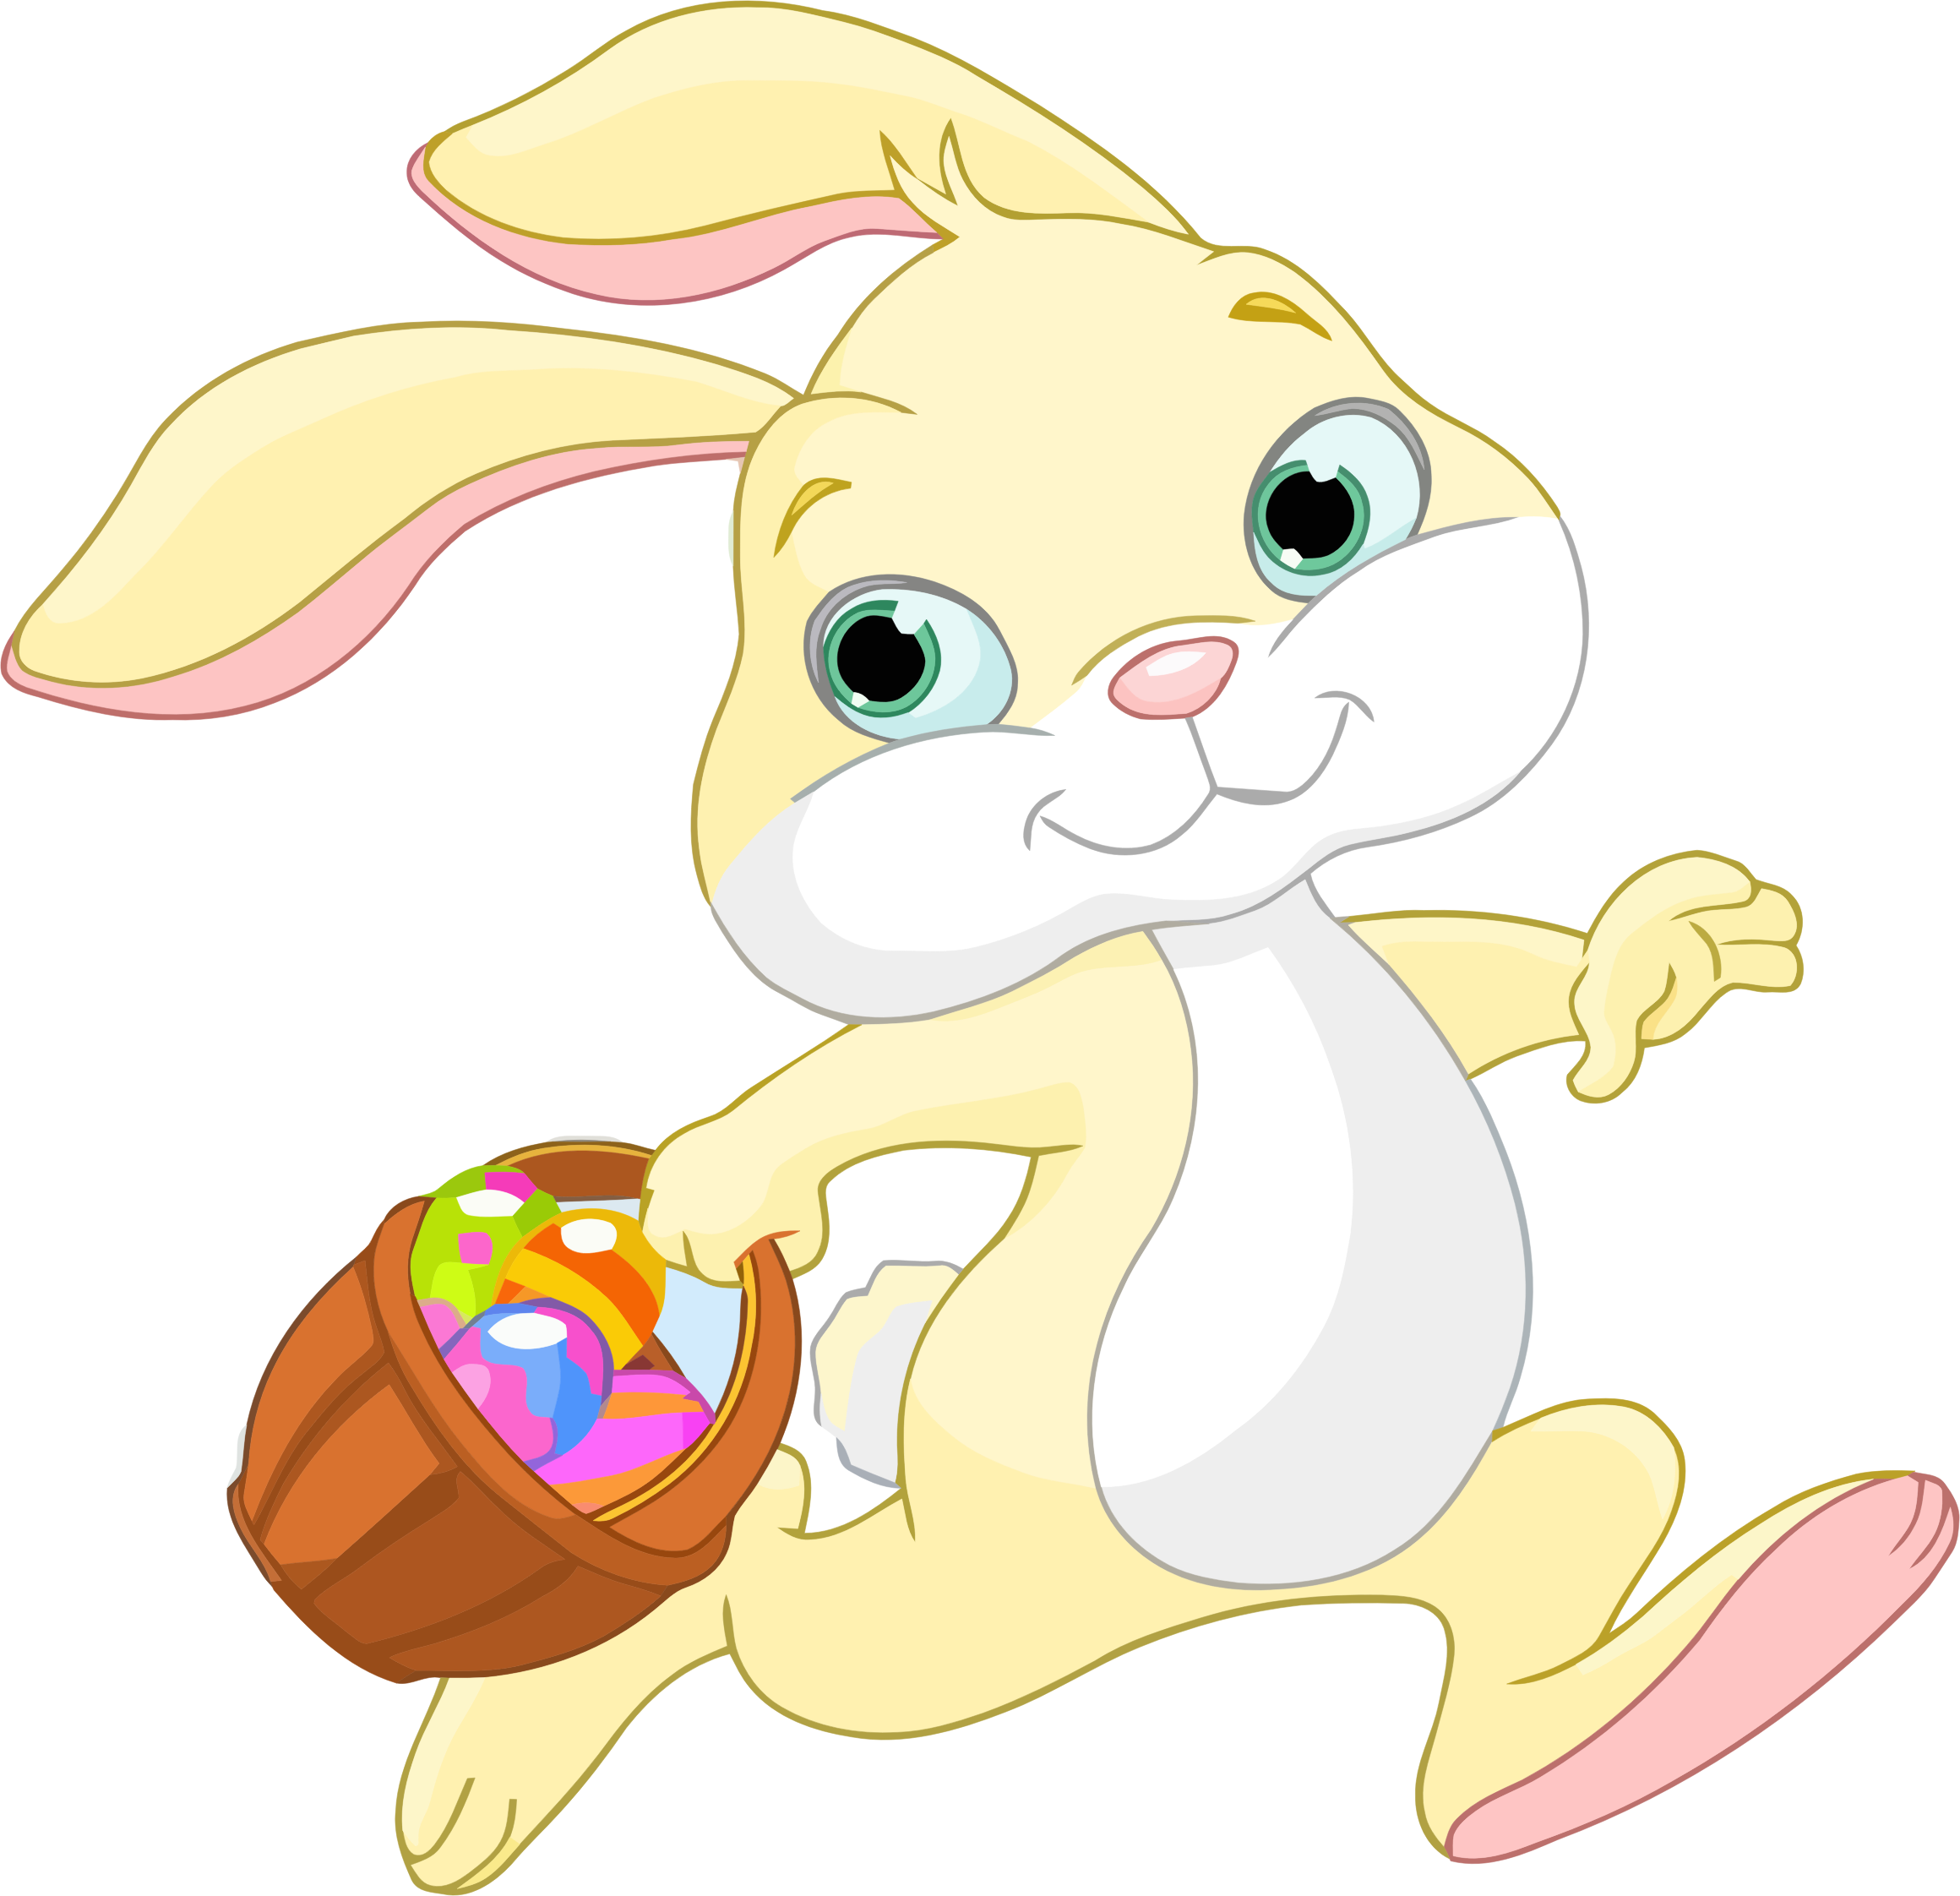 clipart stock Images happy quotes wishes. Easter clipart.